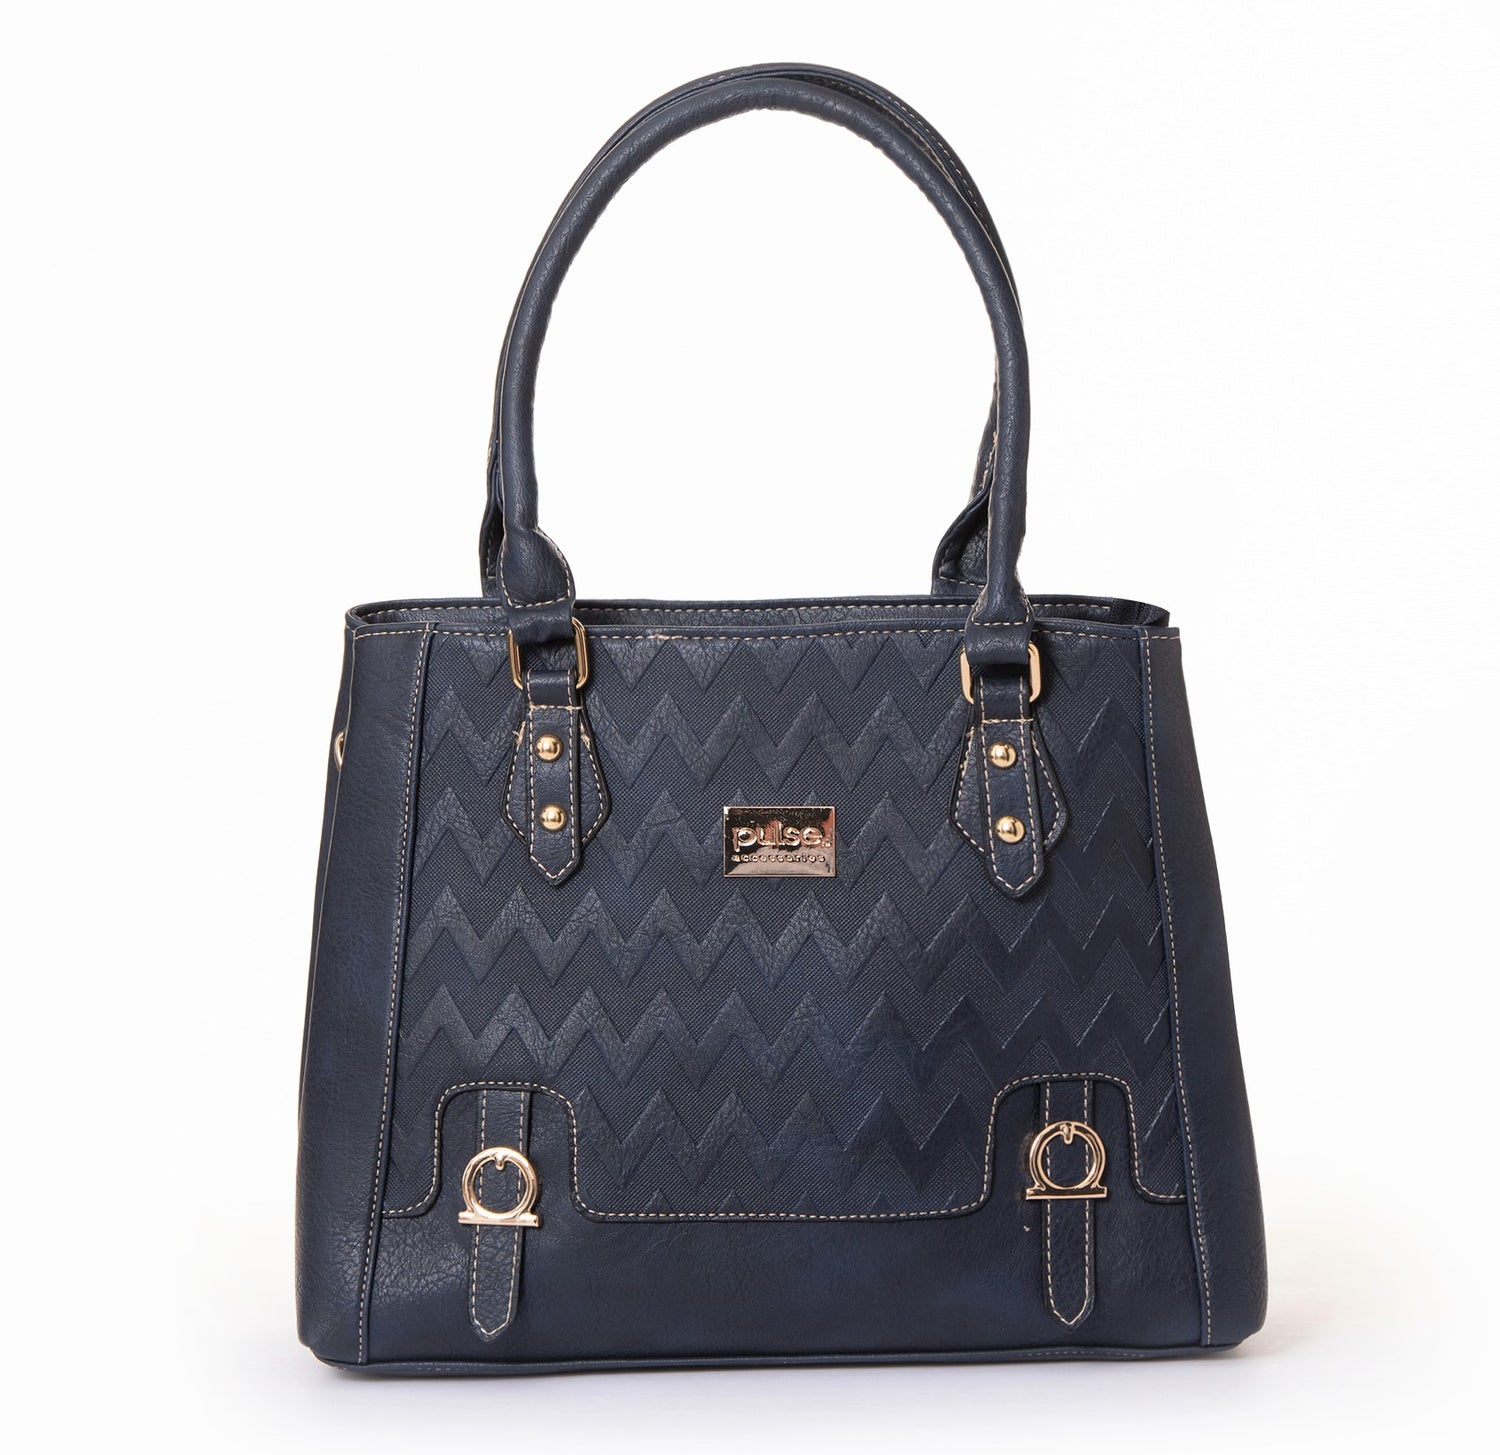 Pulse Accessories Handbag Navy